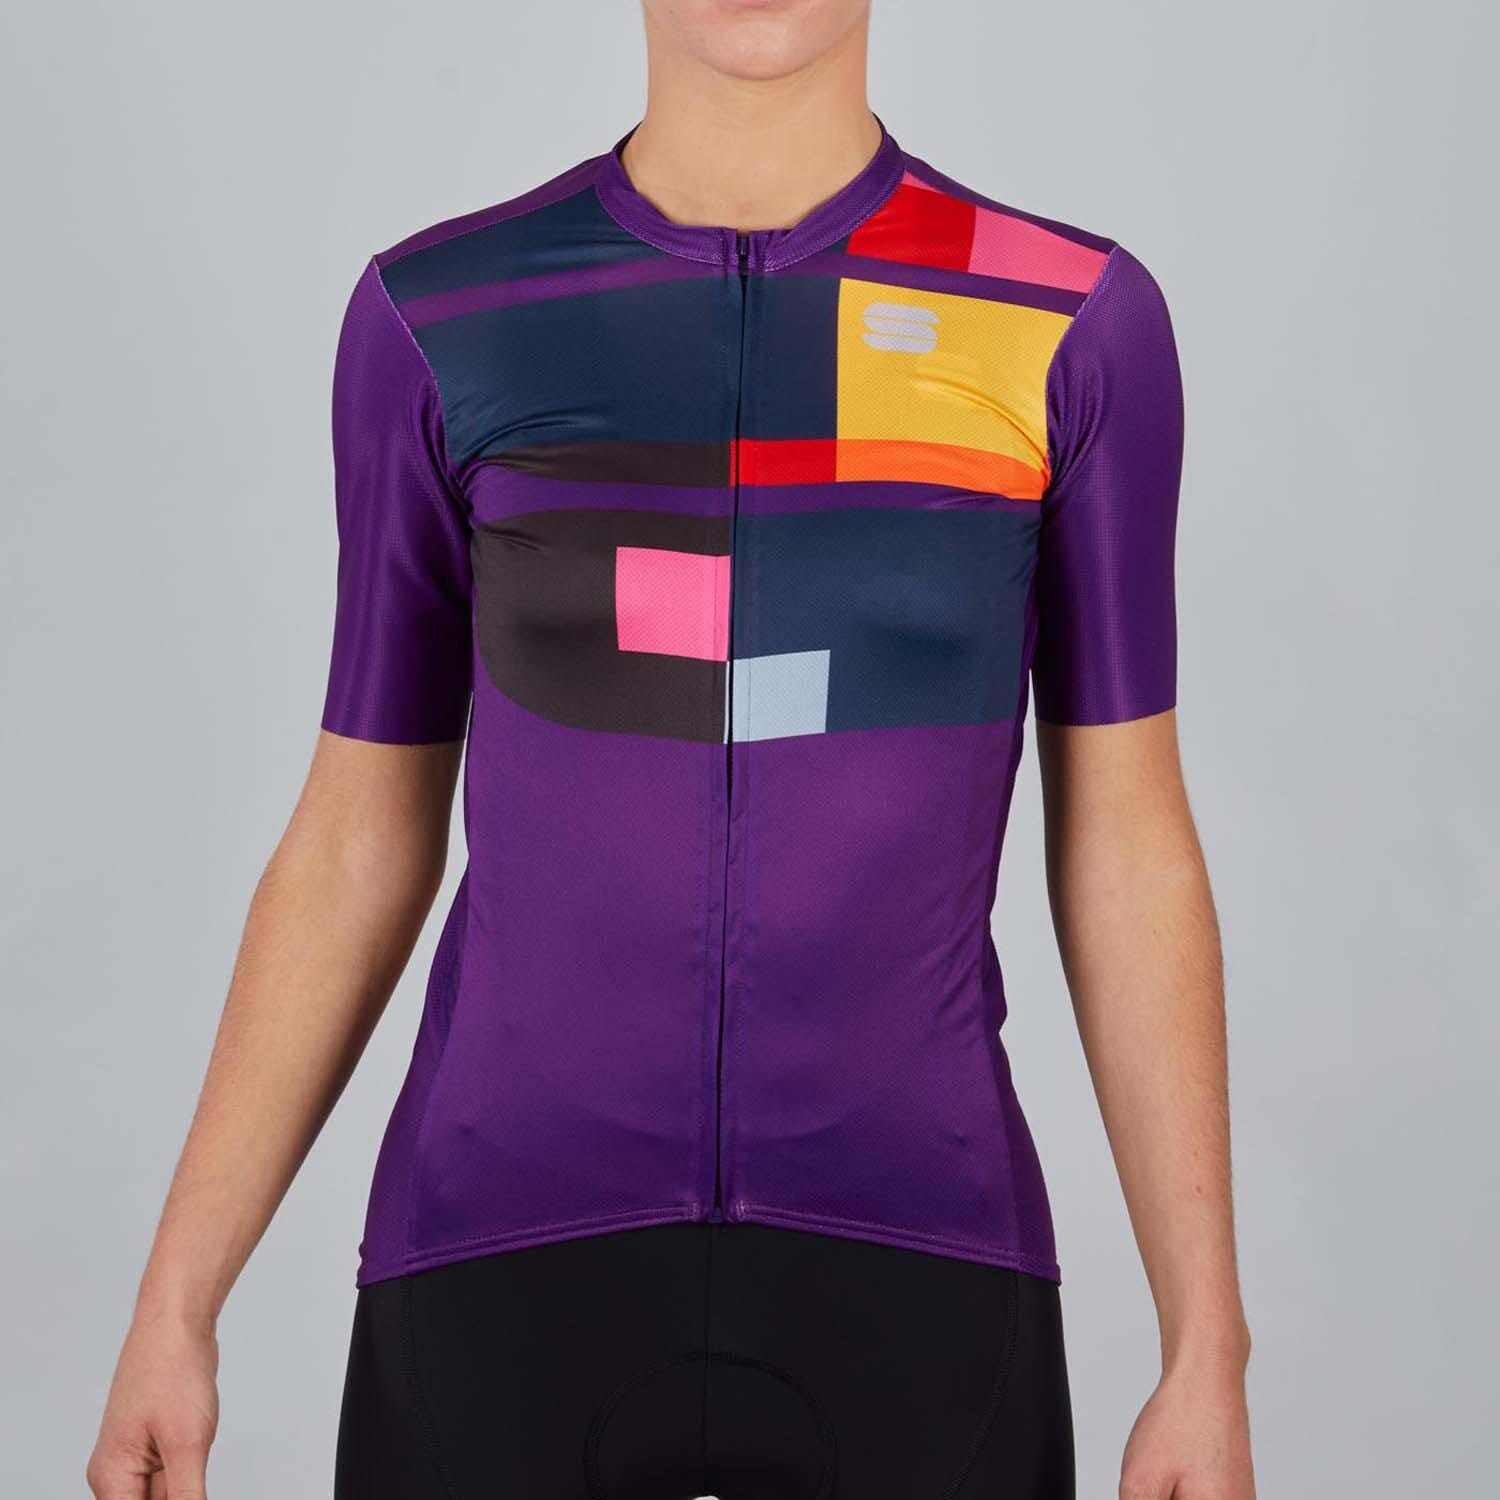 Sportful-Sportful Idea Women's Jersey-Violet-XS-SF210825081-saddleback-elite-performance-cycling